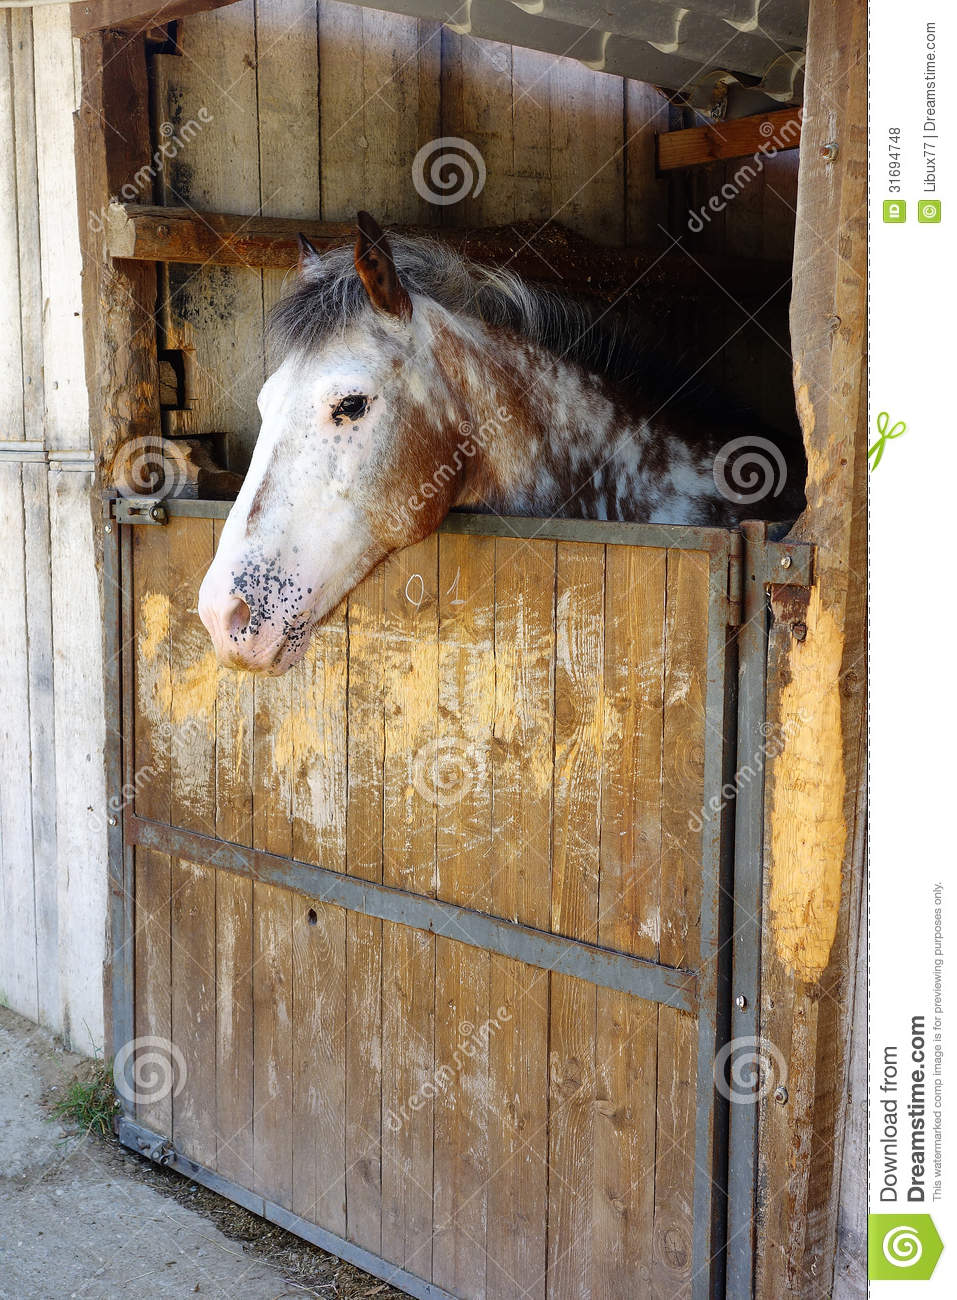 White Horse In Stall Royalty Free Stock Photos Image